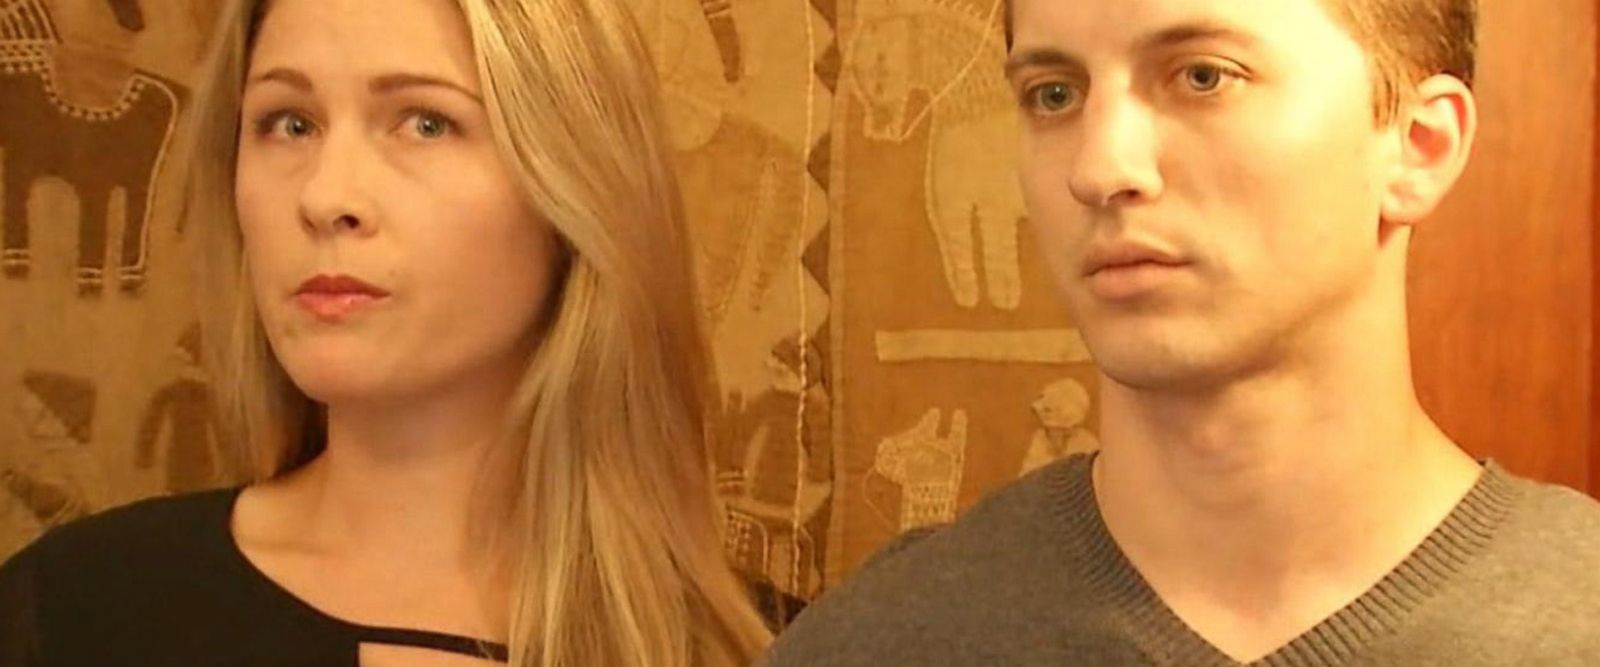 VIDEO: Couple in so-called 'Gone Girl' case convinced more suspects still out there: Part 6